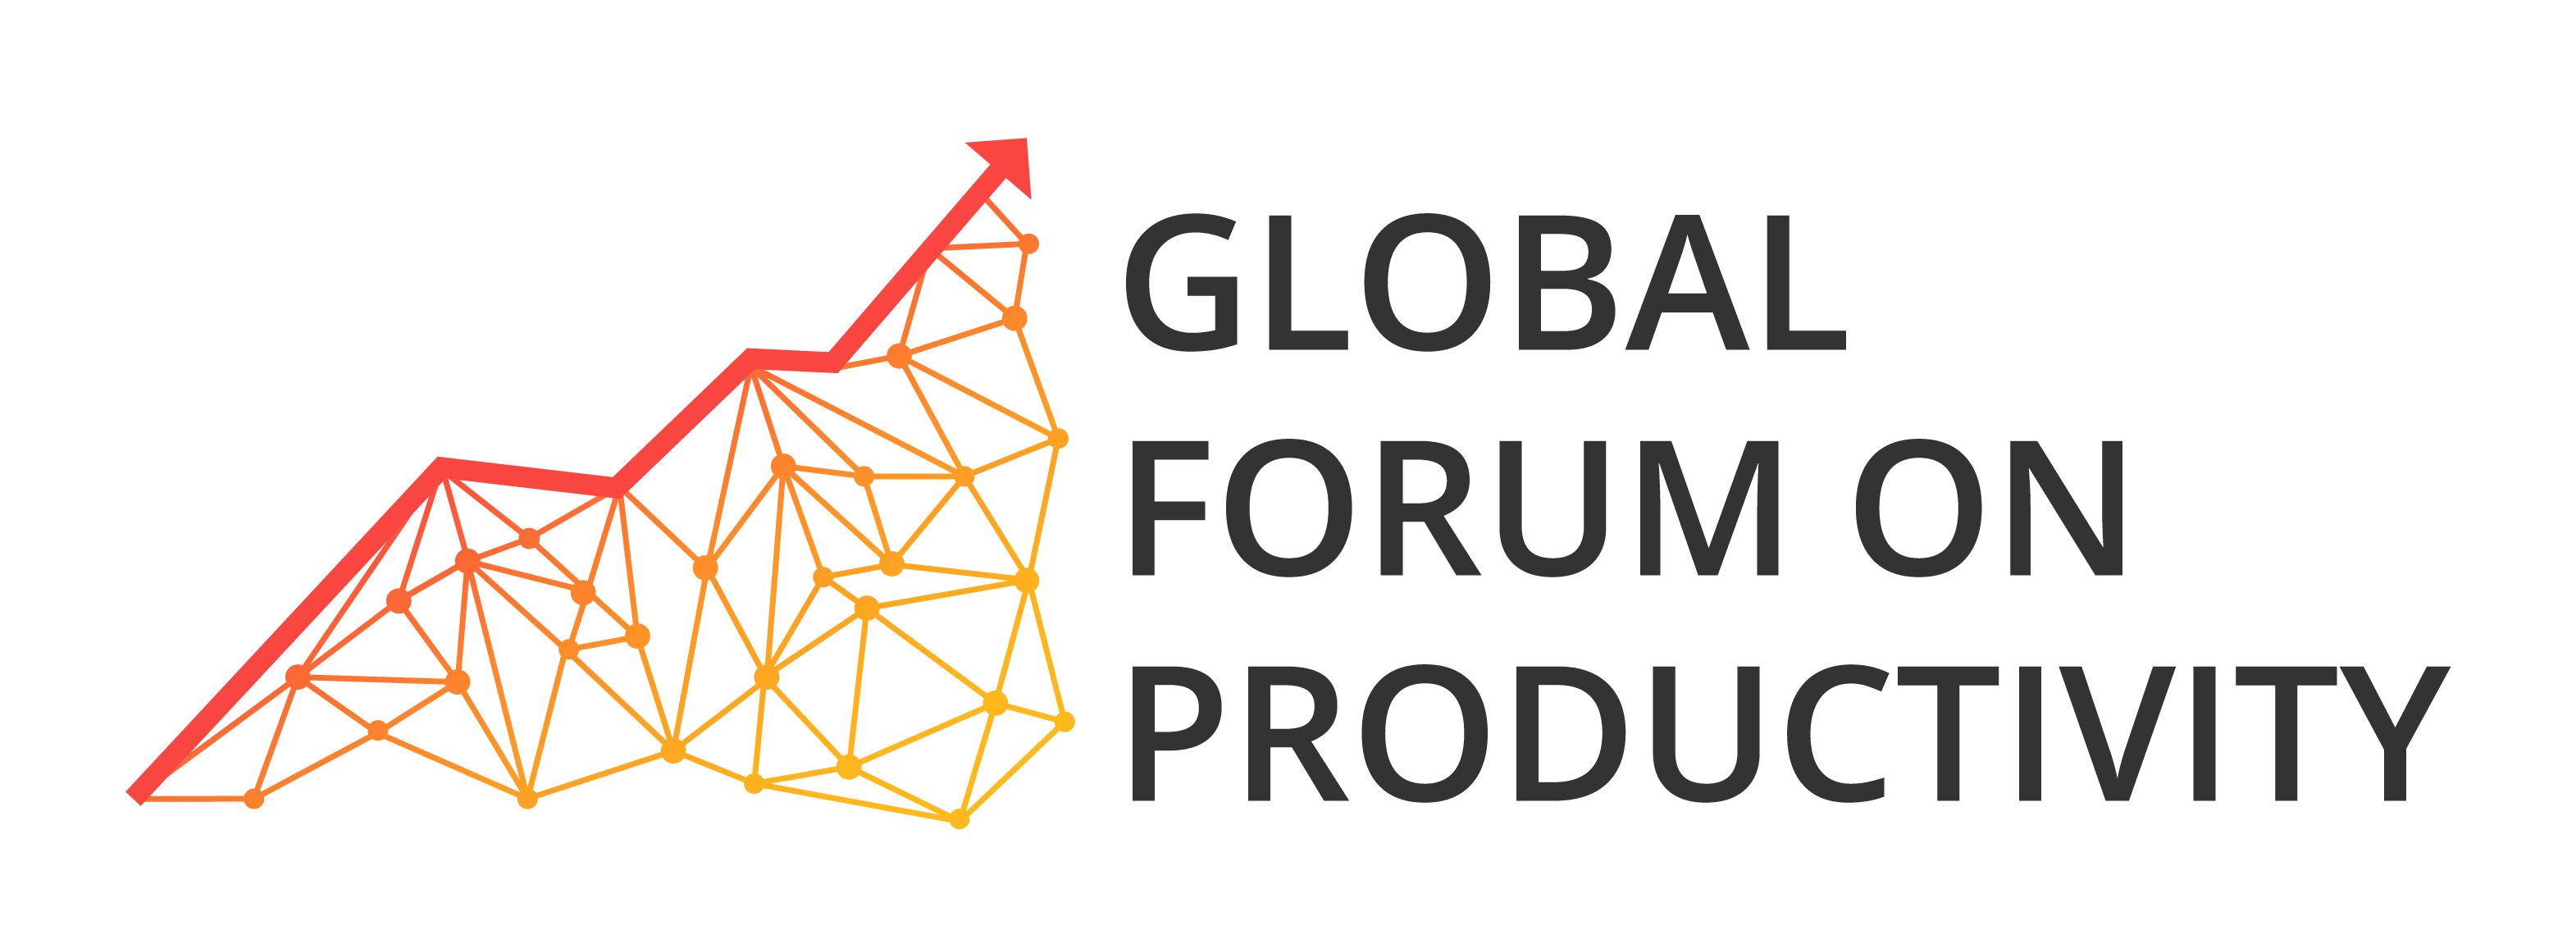 Global Forum on productivity logo